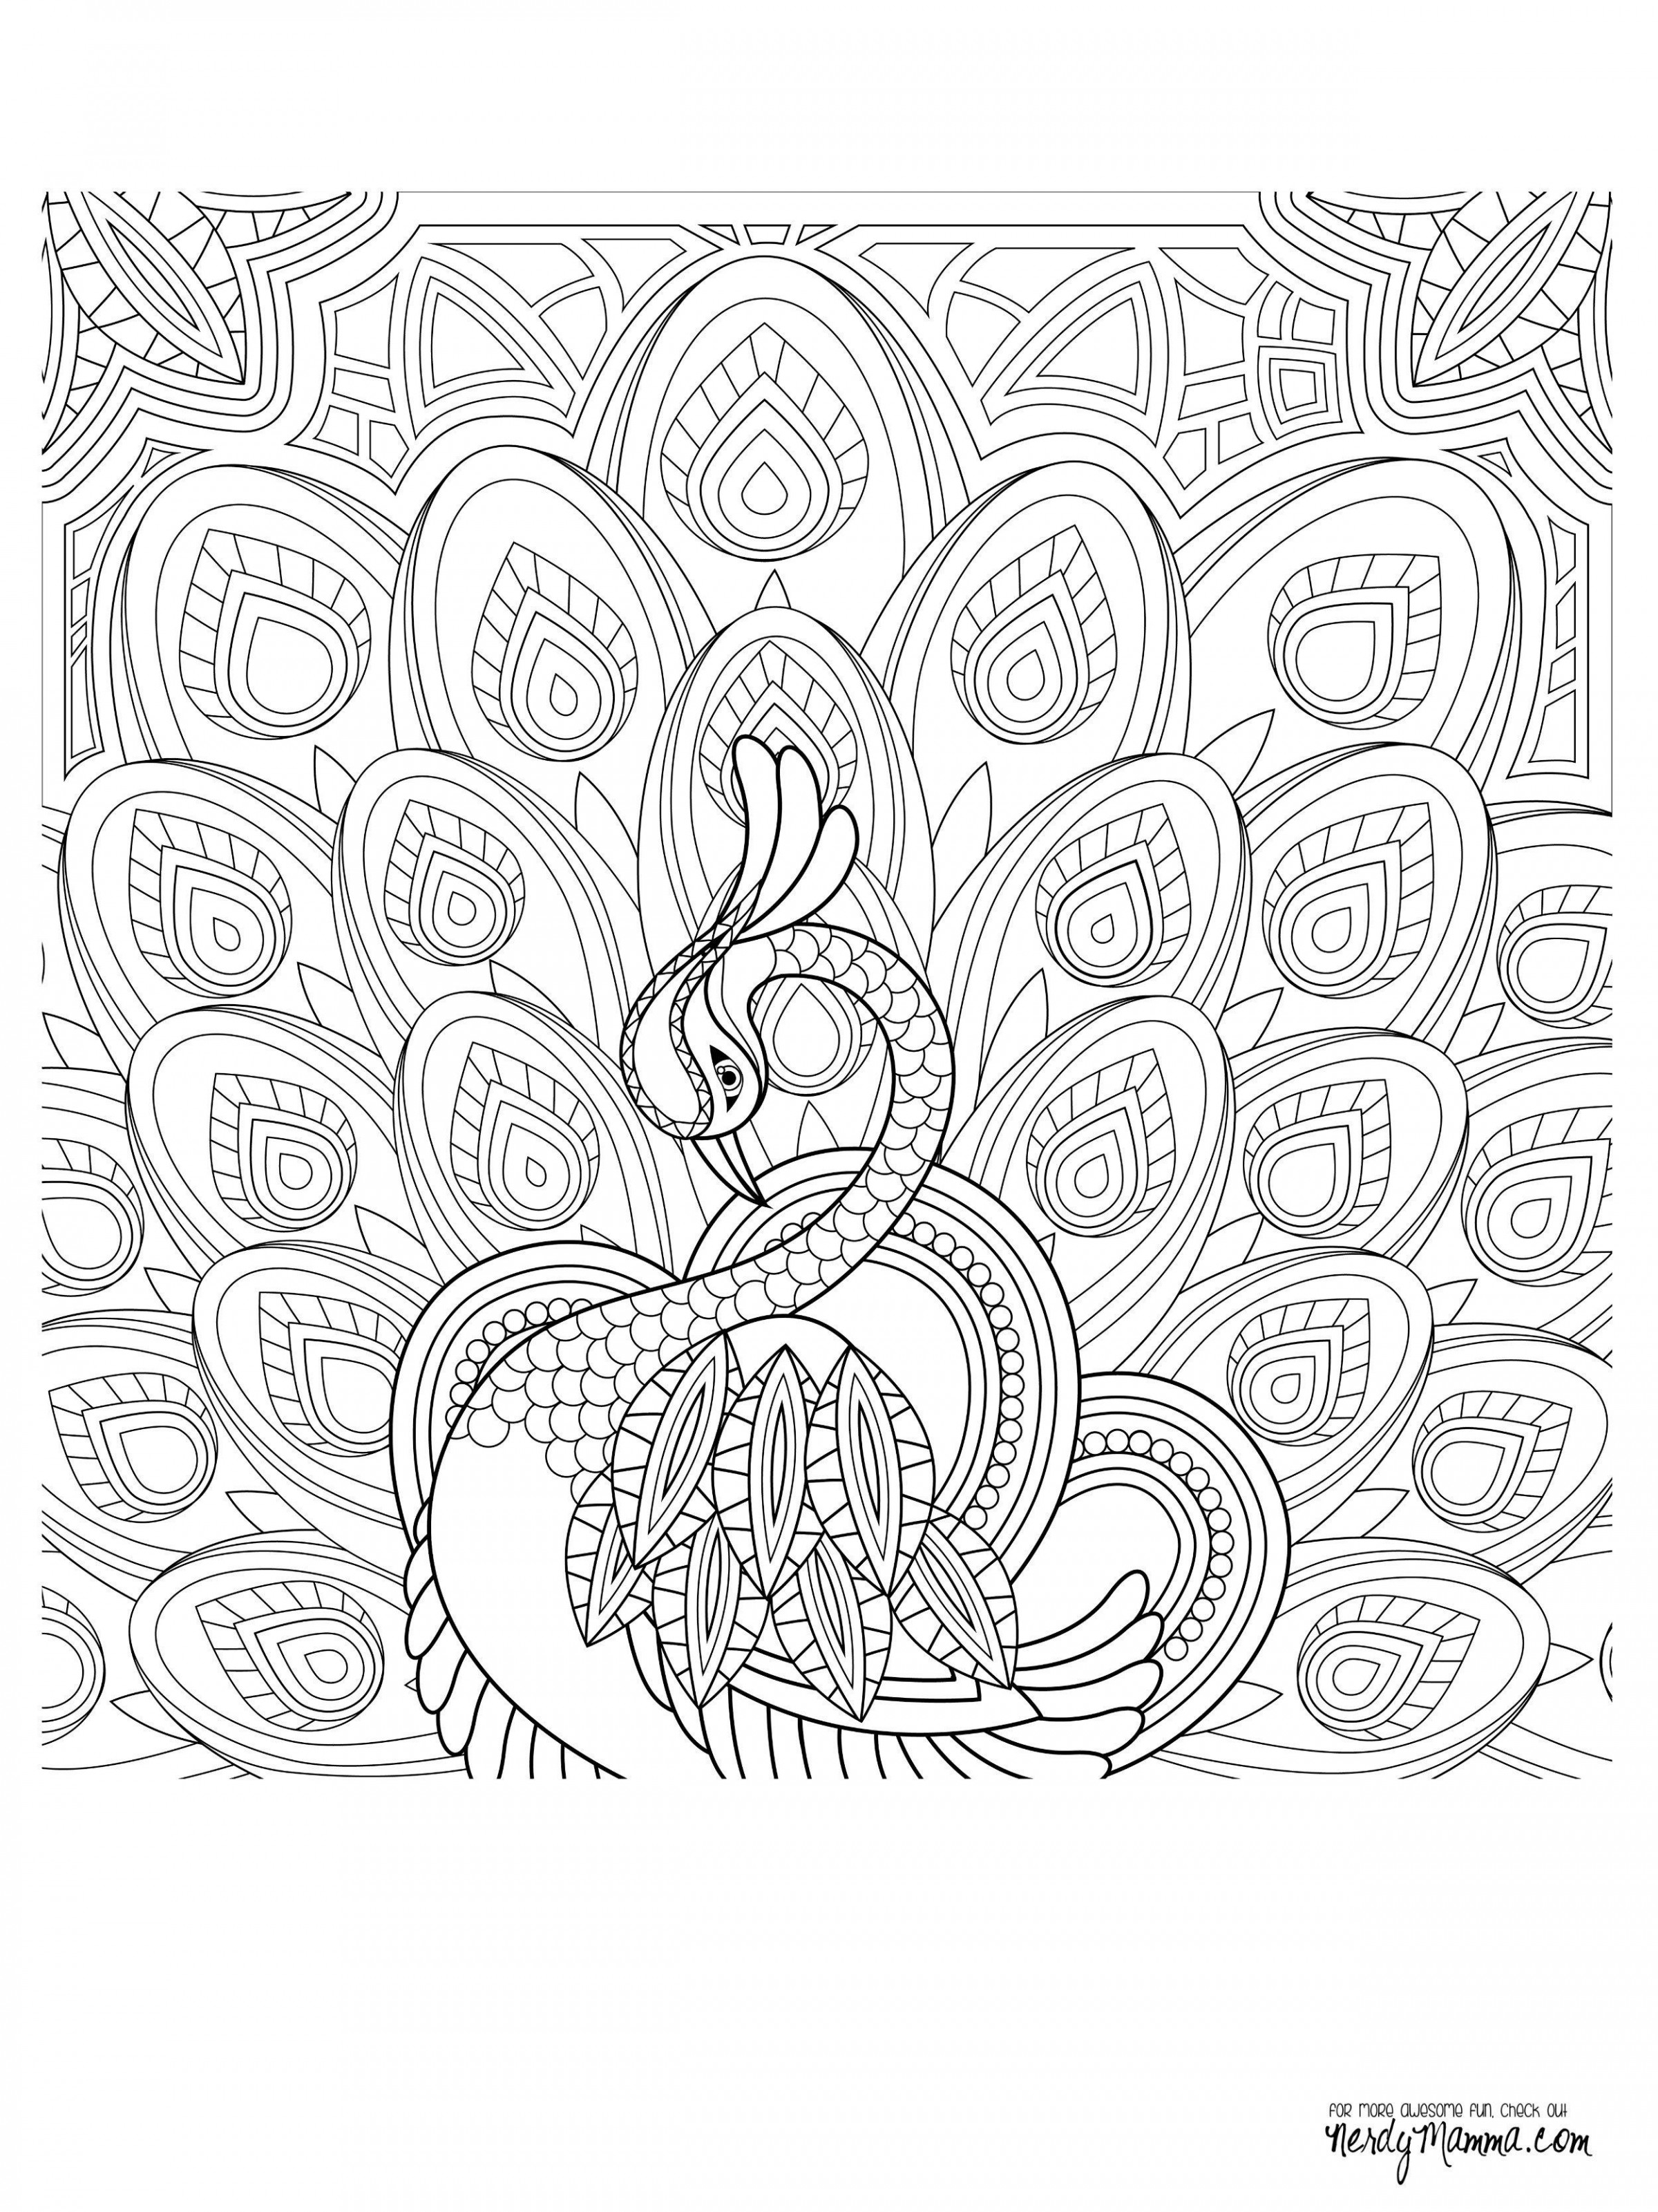 Fall Coloring Pages For Adults Fall Leaves Coloring Pages Free Fall Coloring Pages For Adults Free